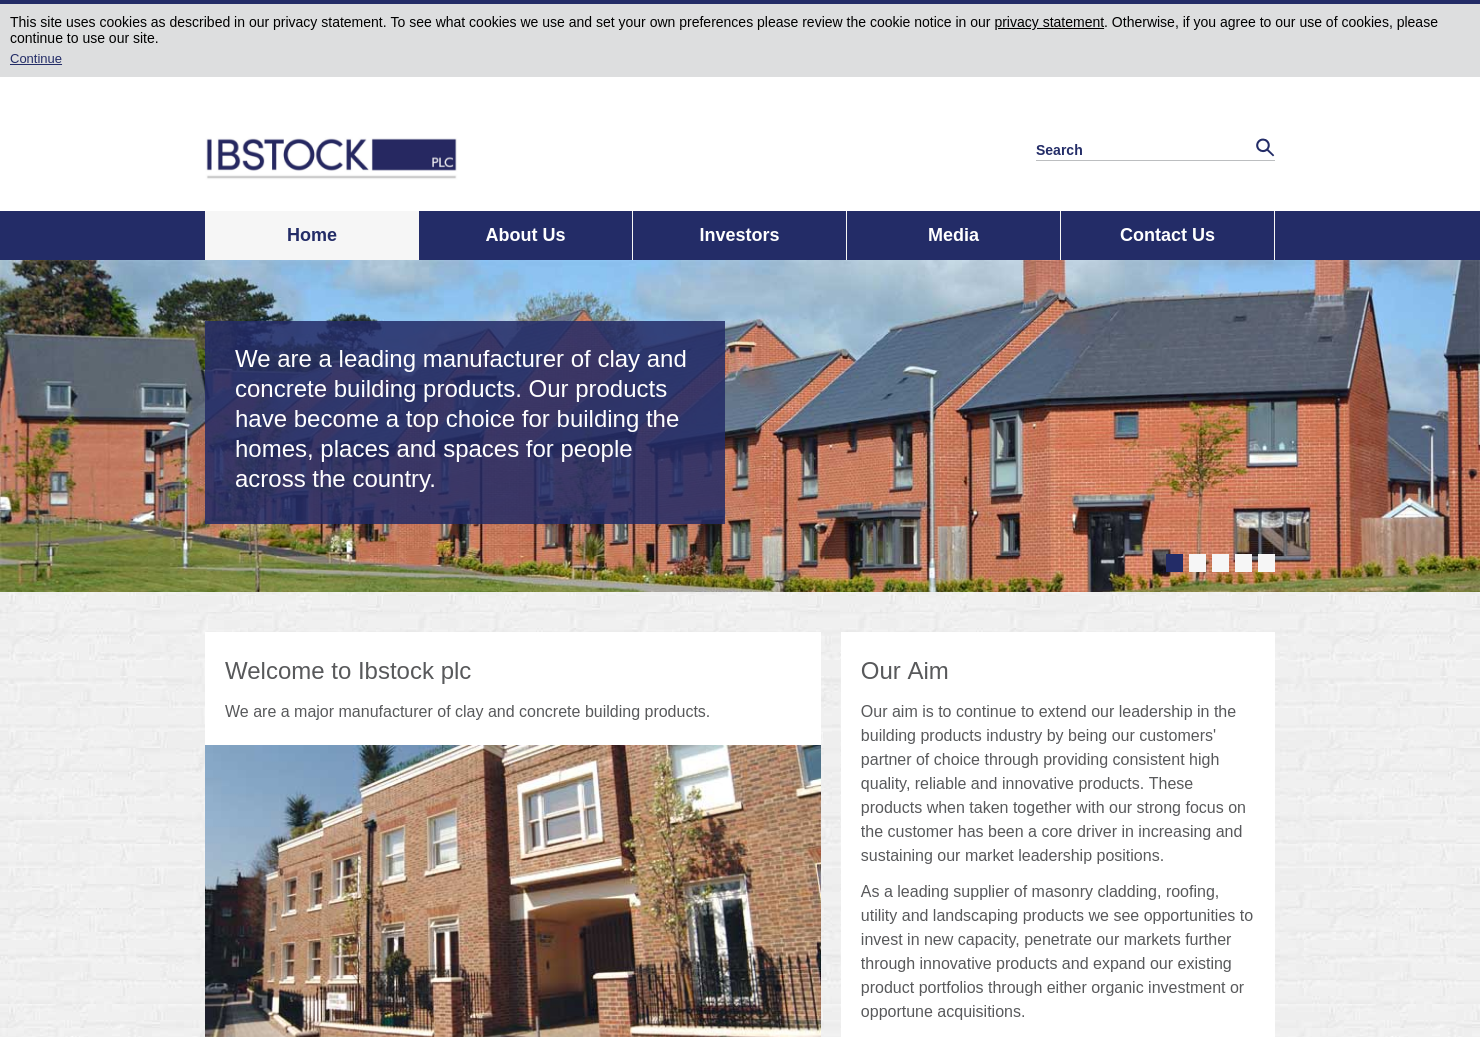 Ibstock Home Page